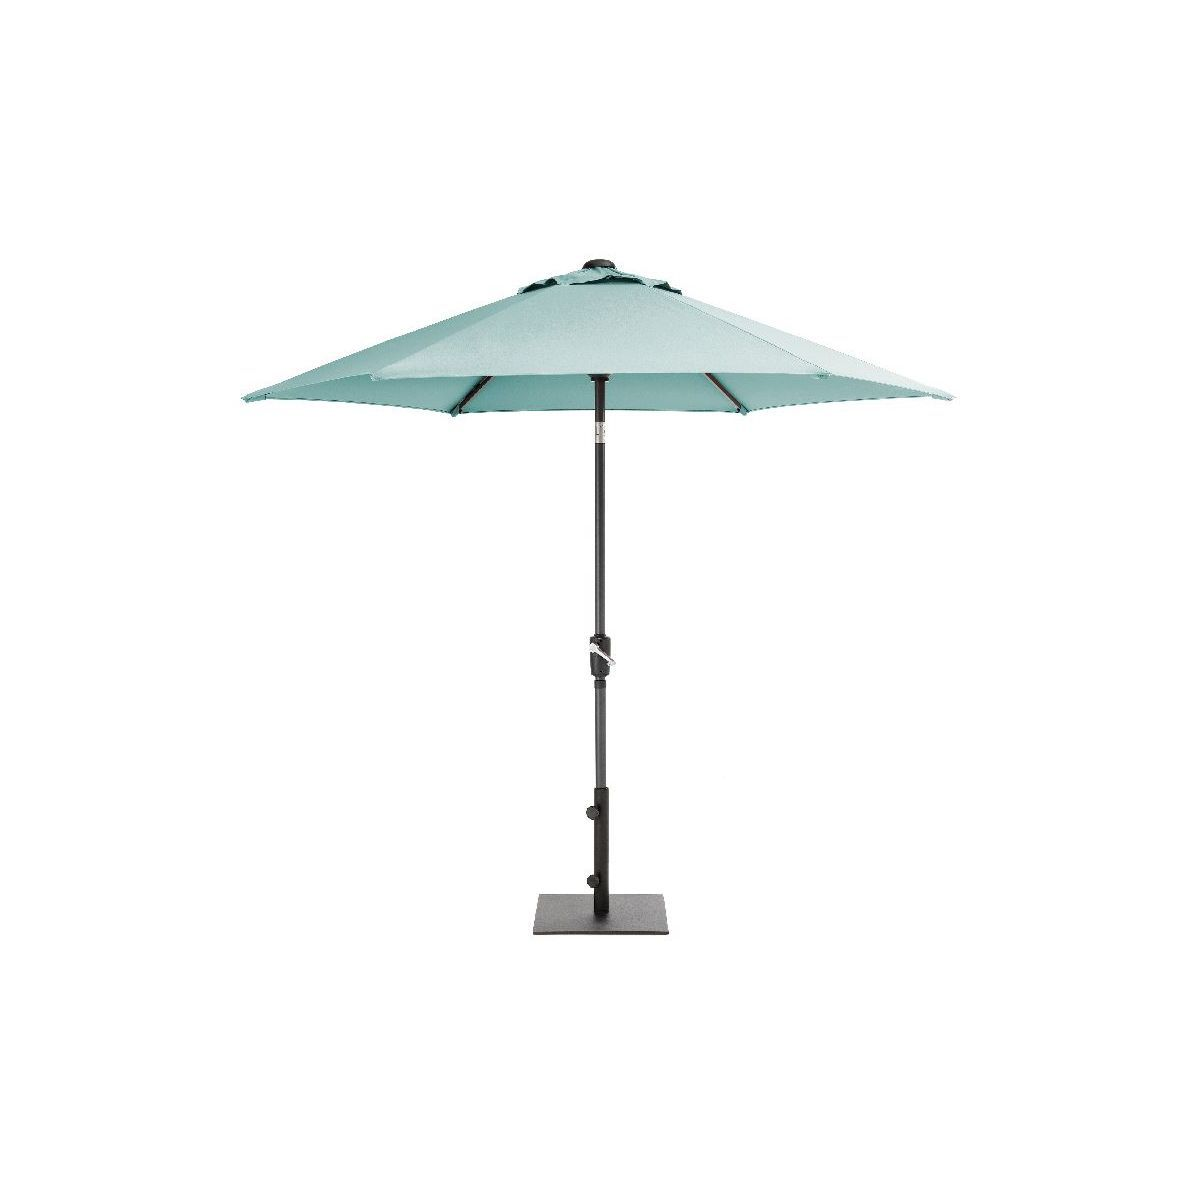 2 5M Wind Up Parasol Aqua 2018